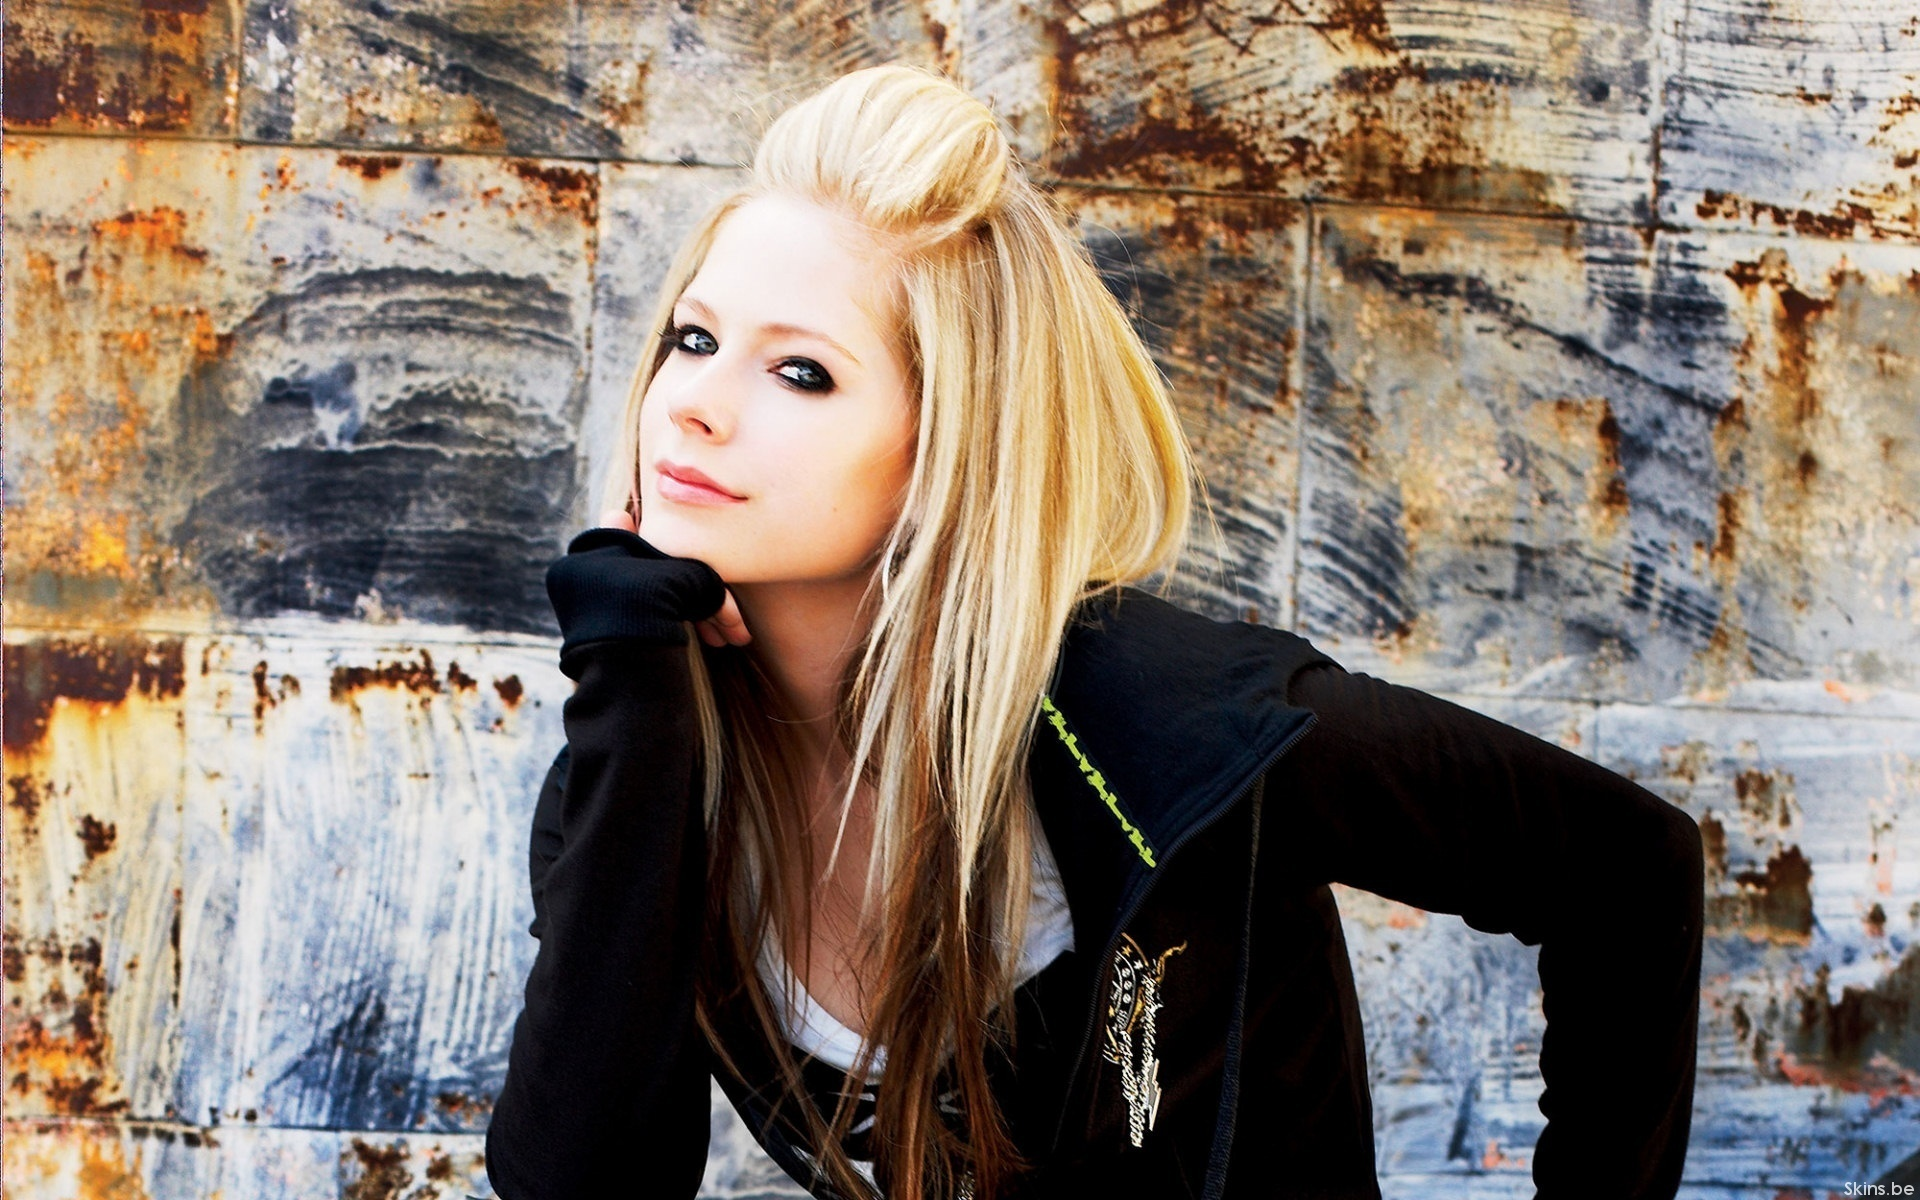 mileyrayfan images avril lavigne hd wallpaper and background photos